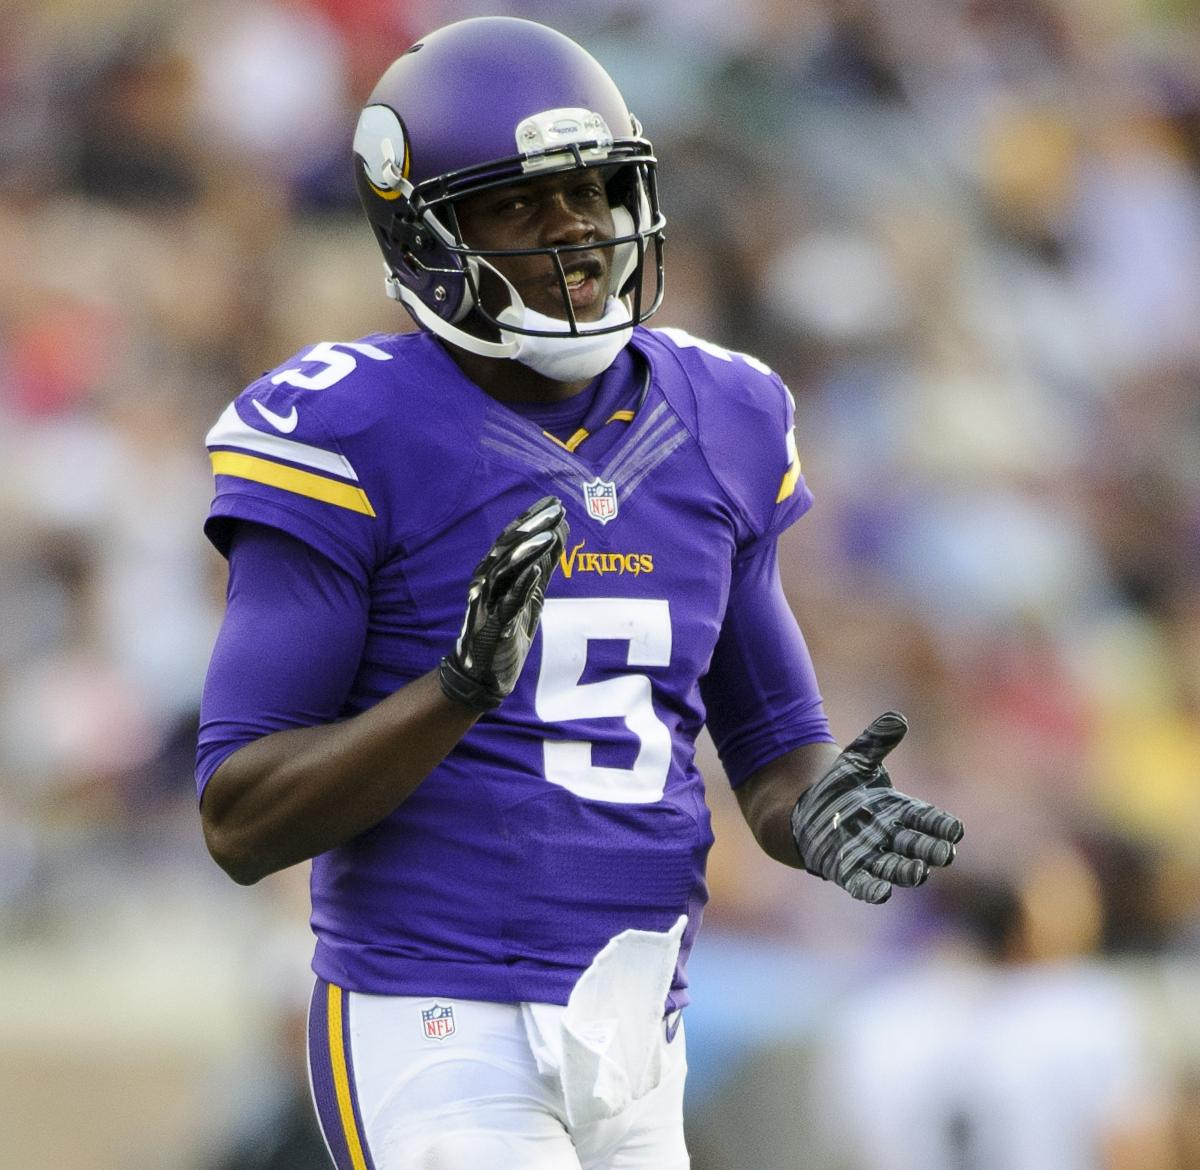 Teddy Bridgewater Will Have Strongest Rookie Season Among Class of 2014 QBs   f2b348aad